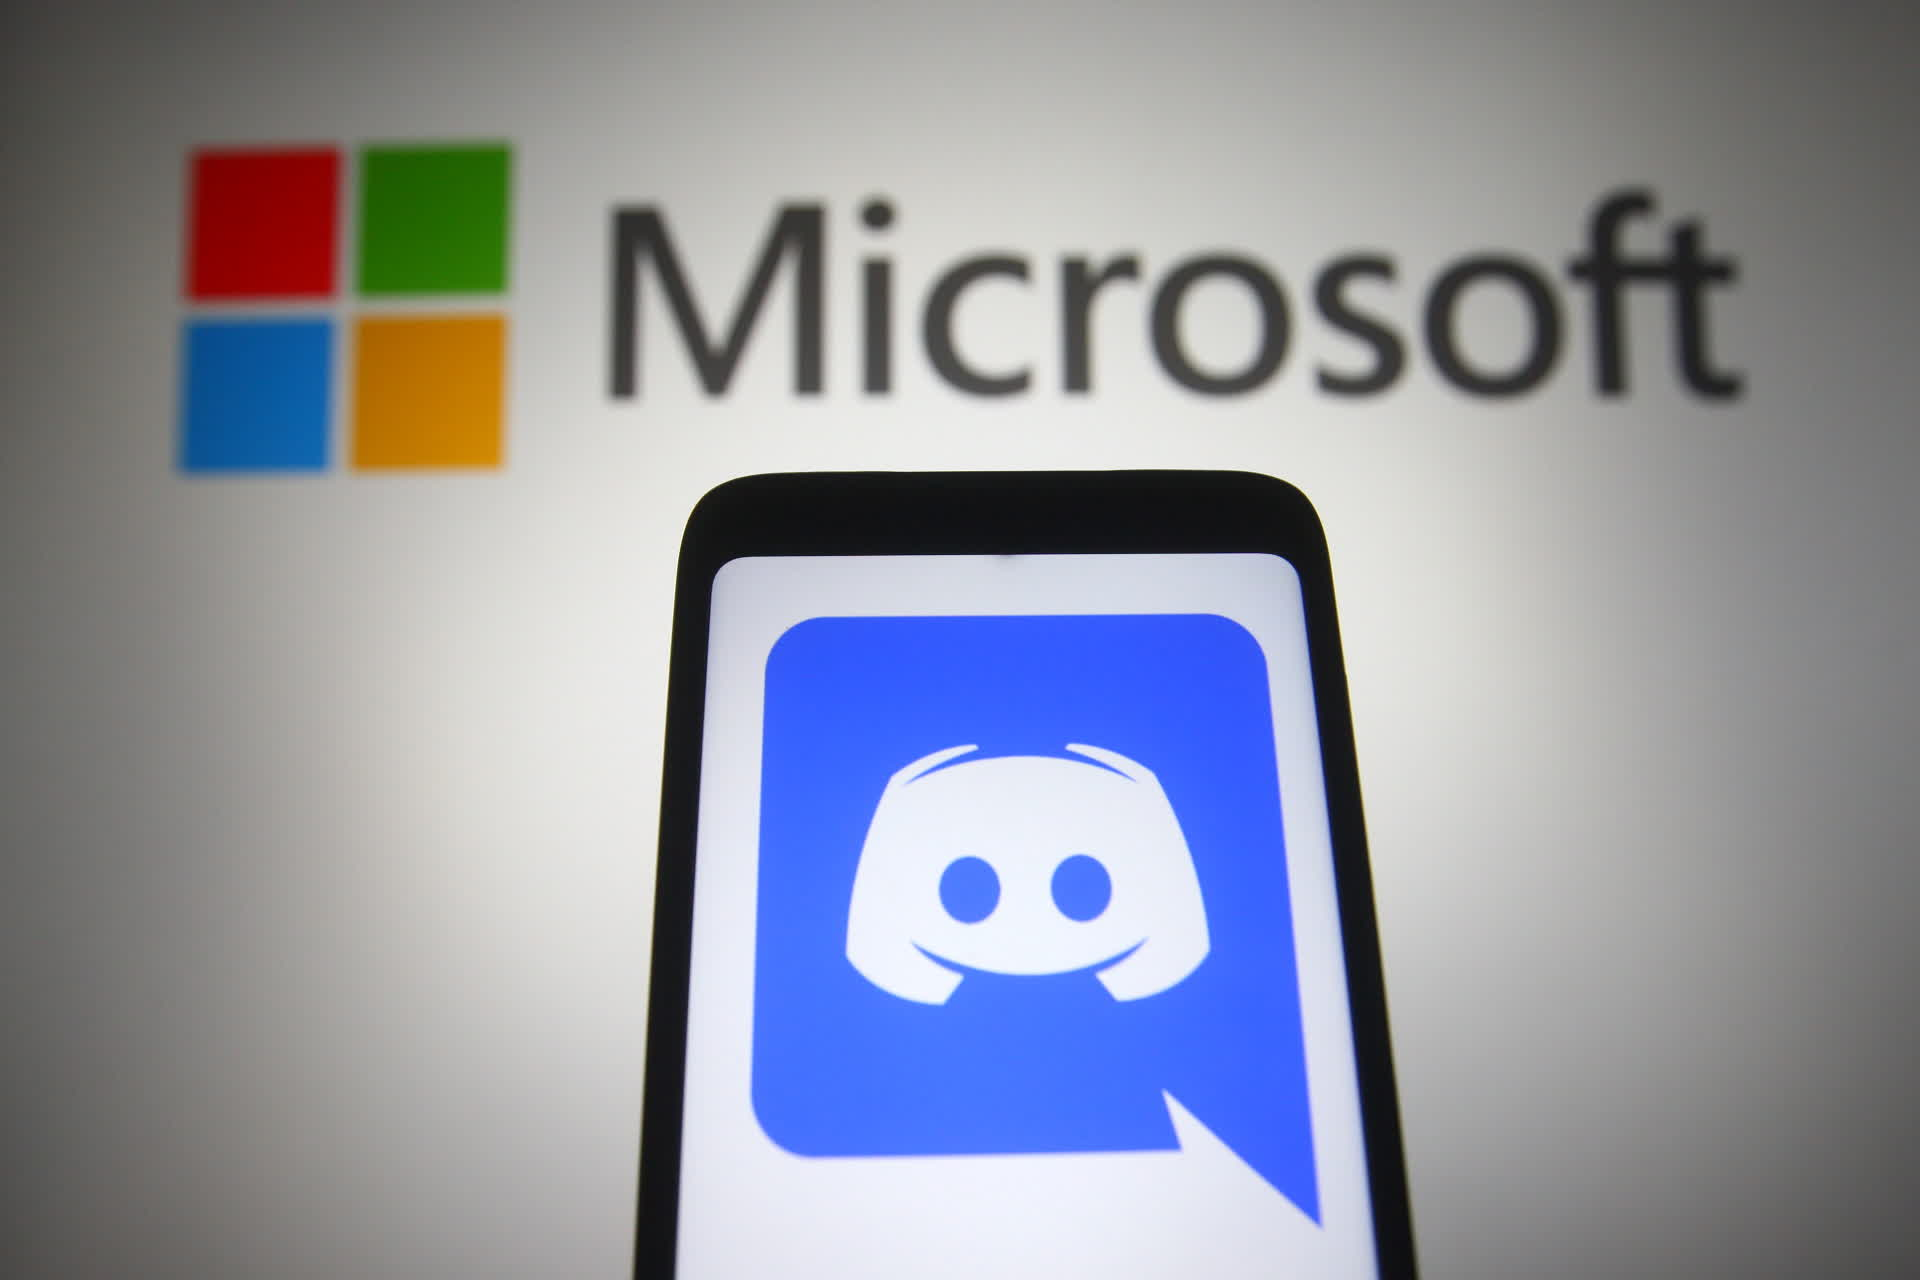 Discord has reportedly walked away from buyout talks with Microsoft